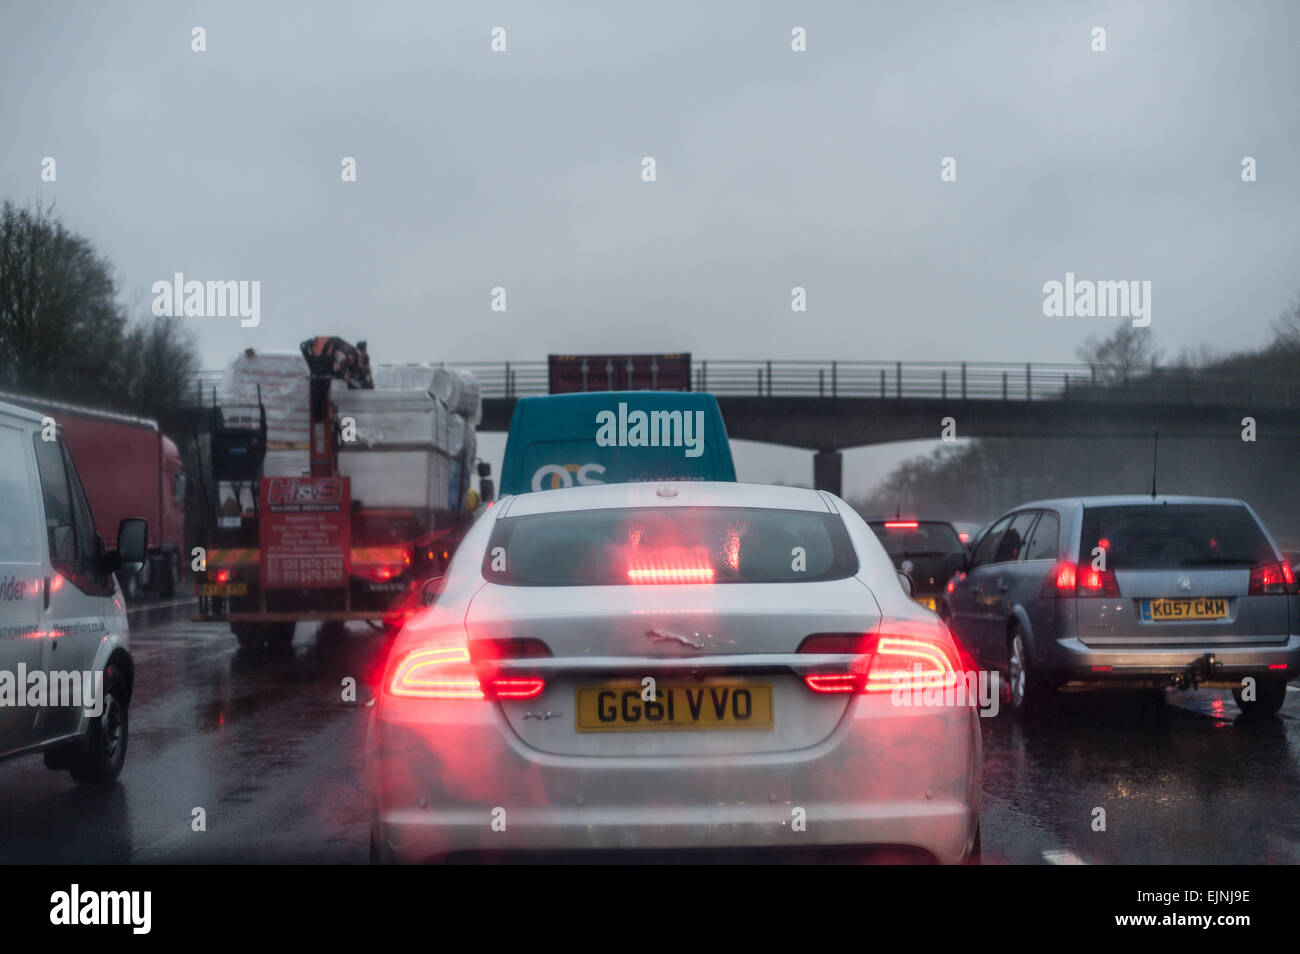 dreary wet rush hour journey standstill on motorway carriage stationary cars lorries with tail rear brake lights - Stock Image